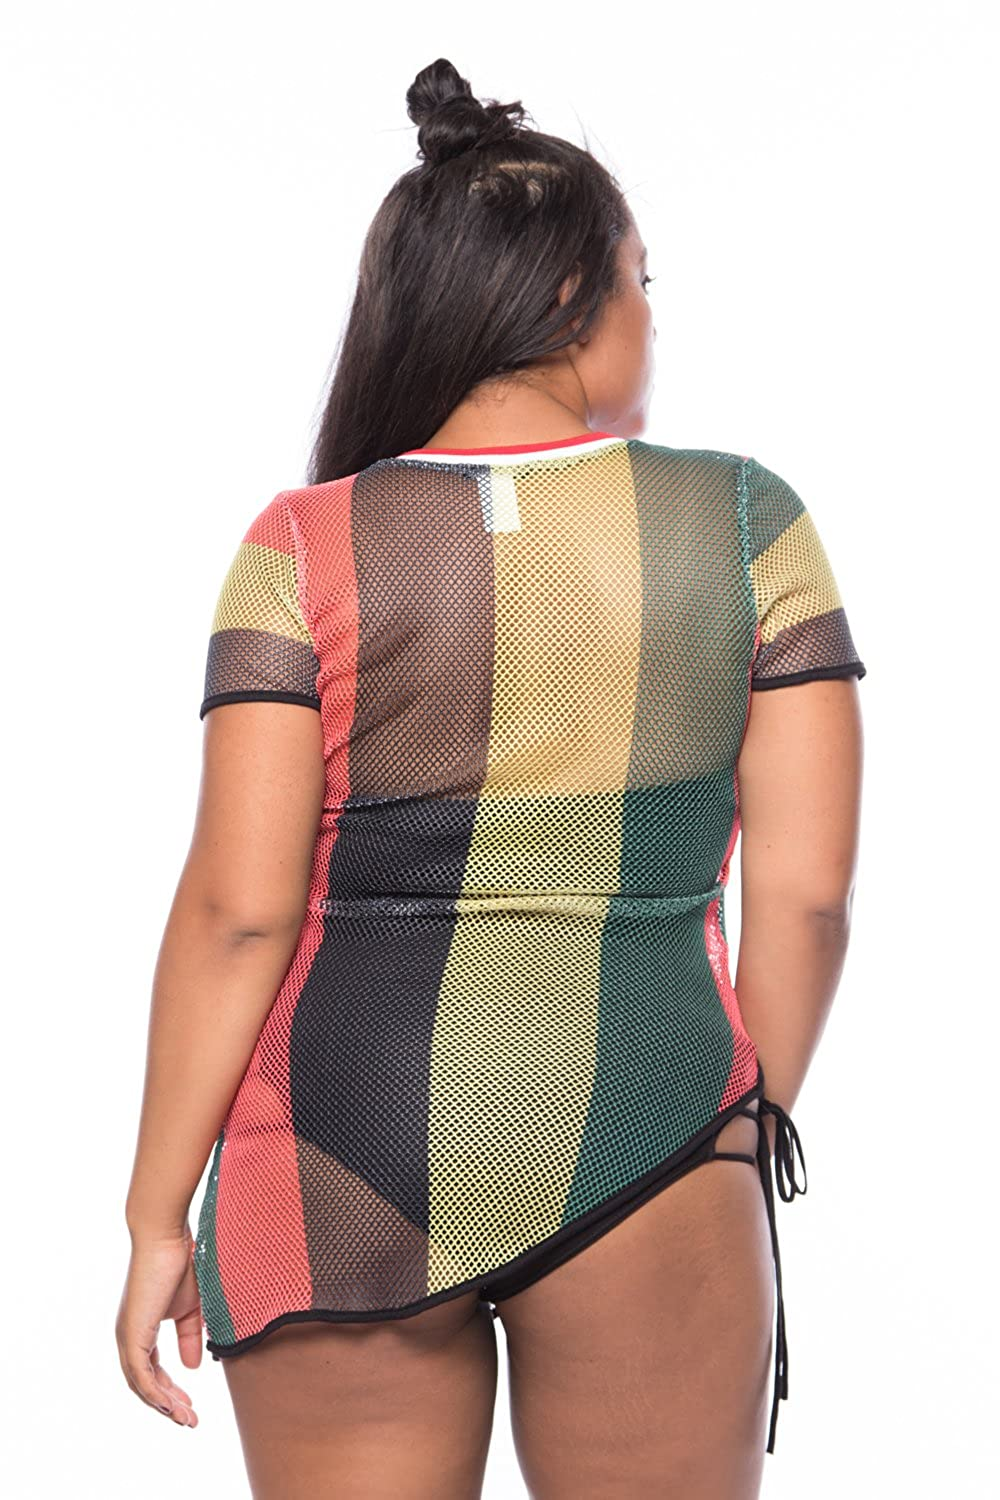 034ac4edd1 GENx Womens Plus Size Fishnet Rasta Jamaica Bikini Cover Up Tunic Top  TK2429 (XL, Multi): Amazon.ca: Clothing & Accessories